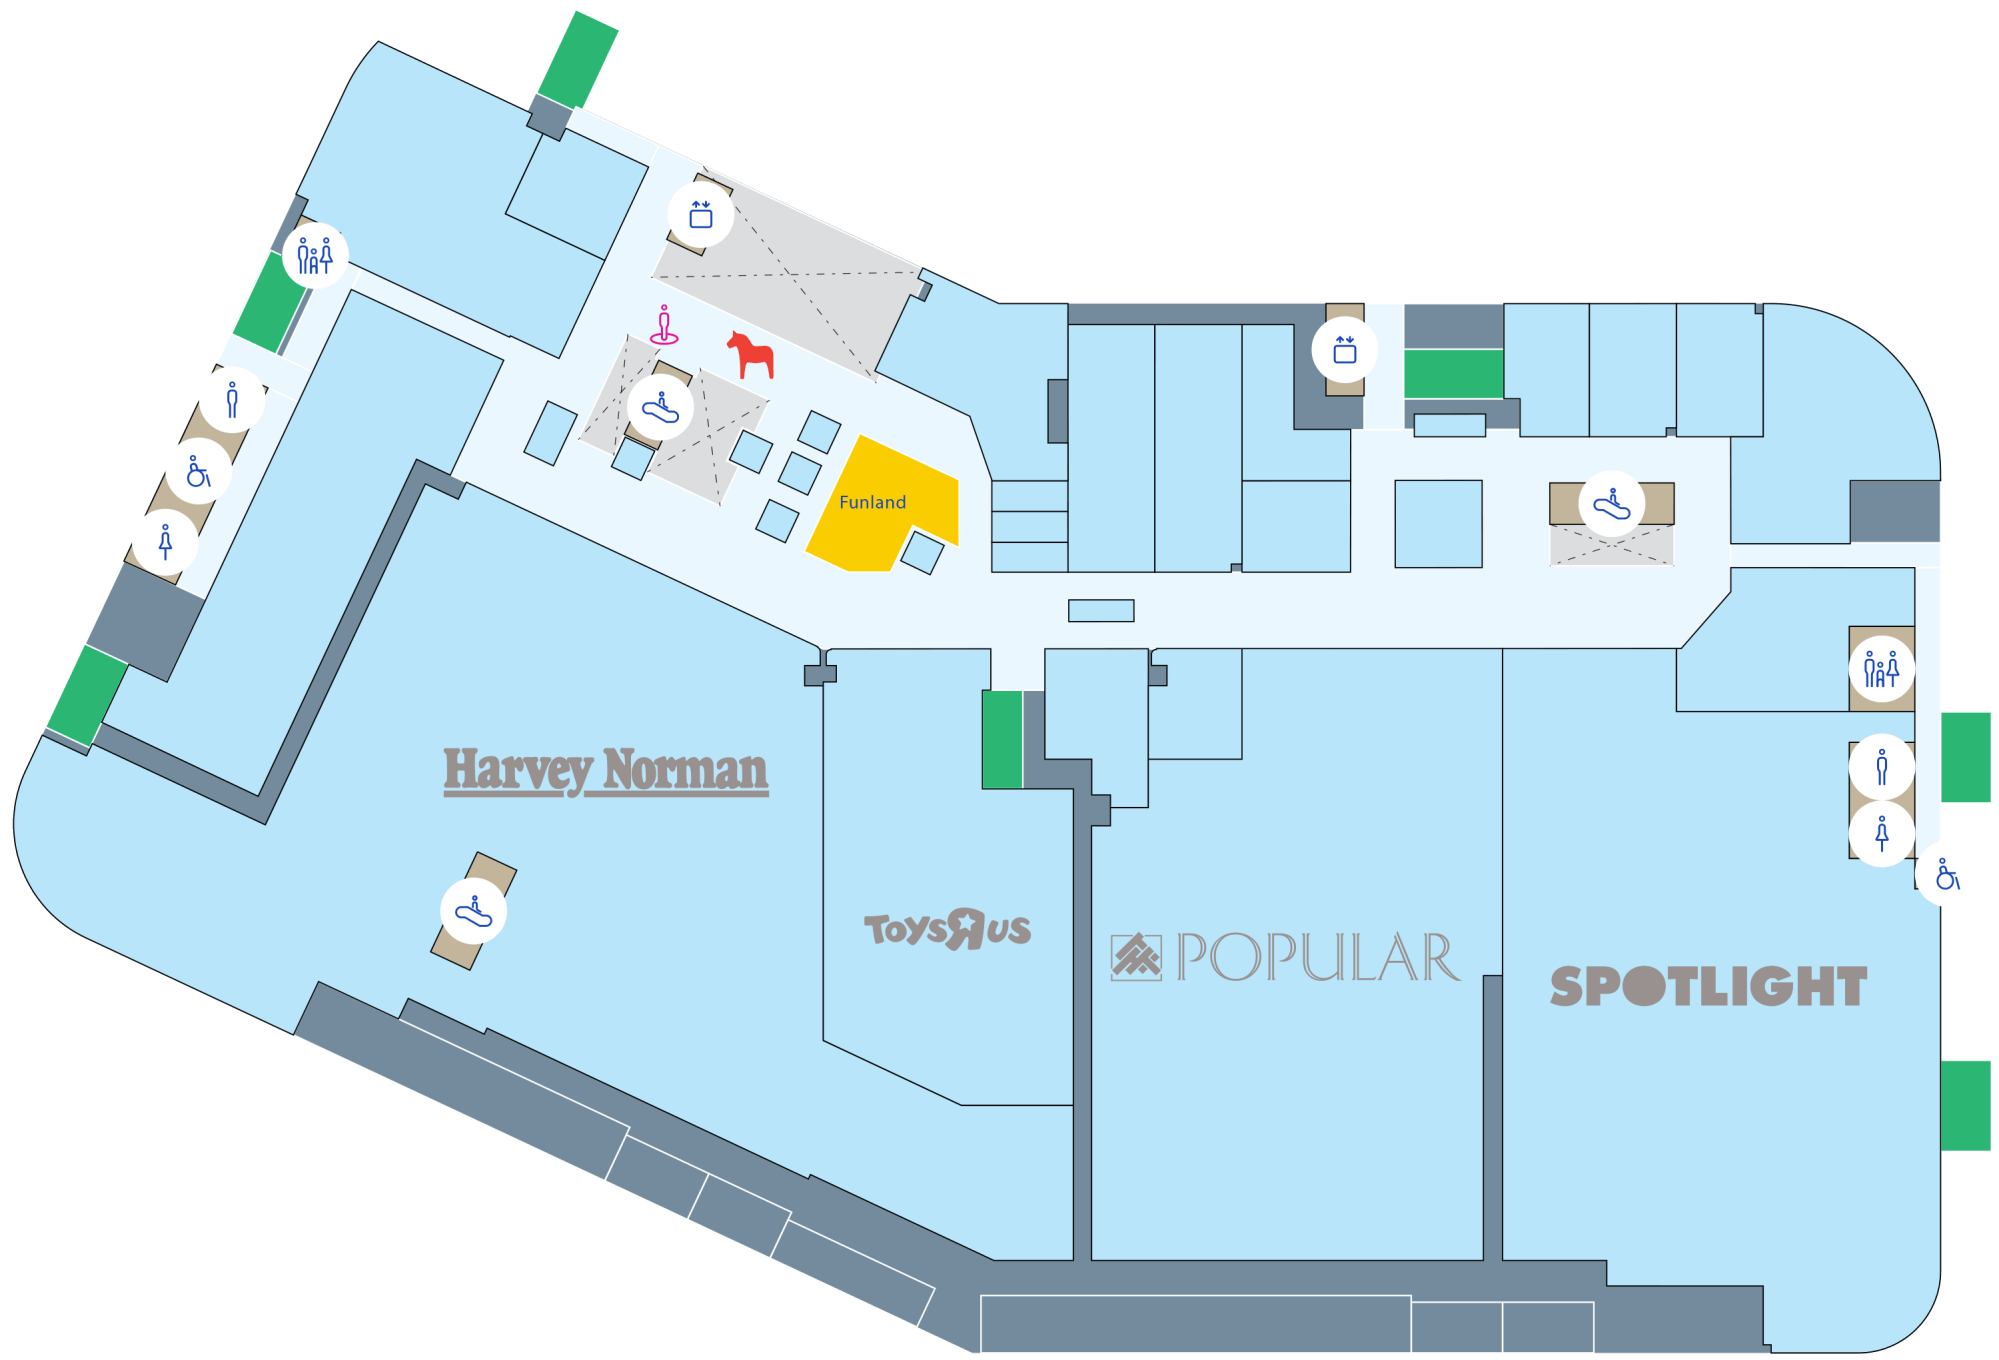 hight resolution of power plant mall layout